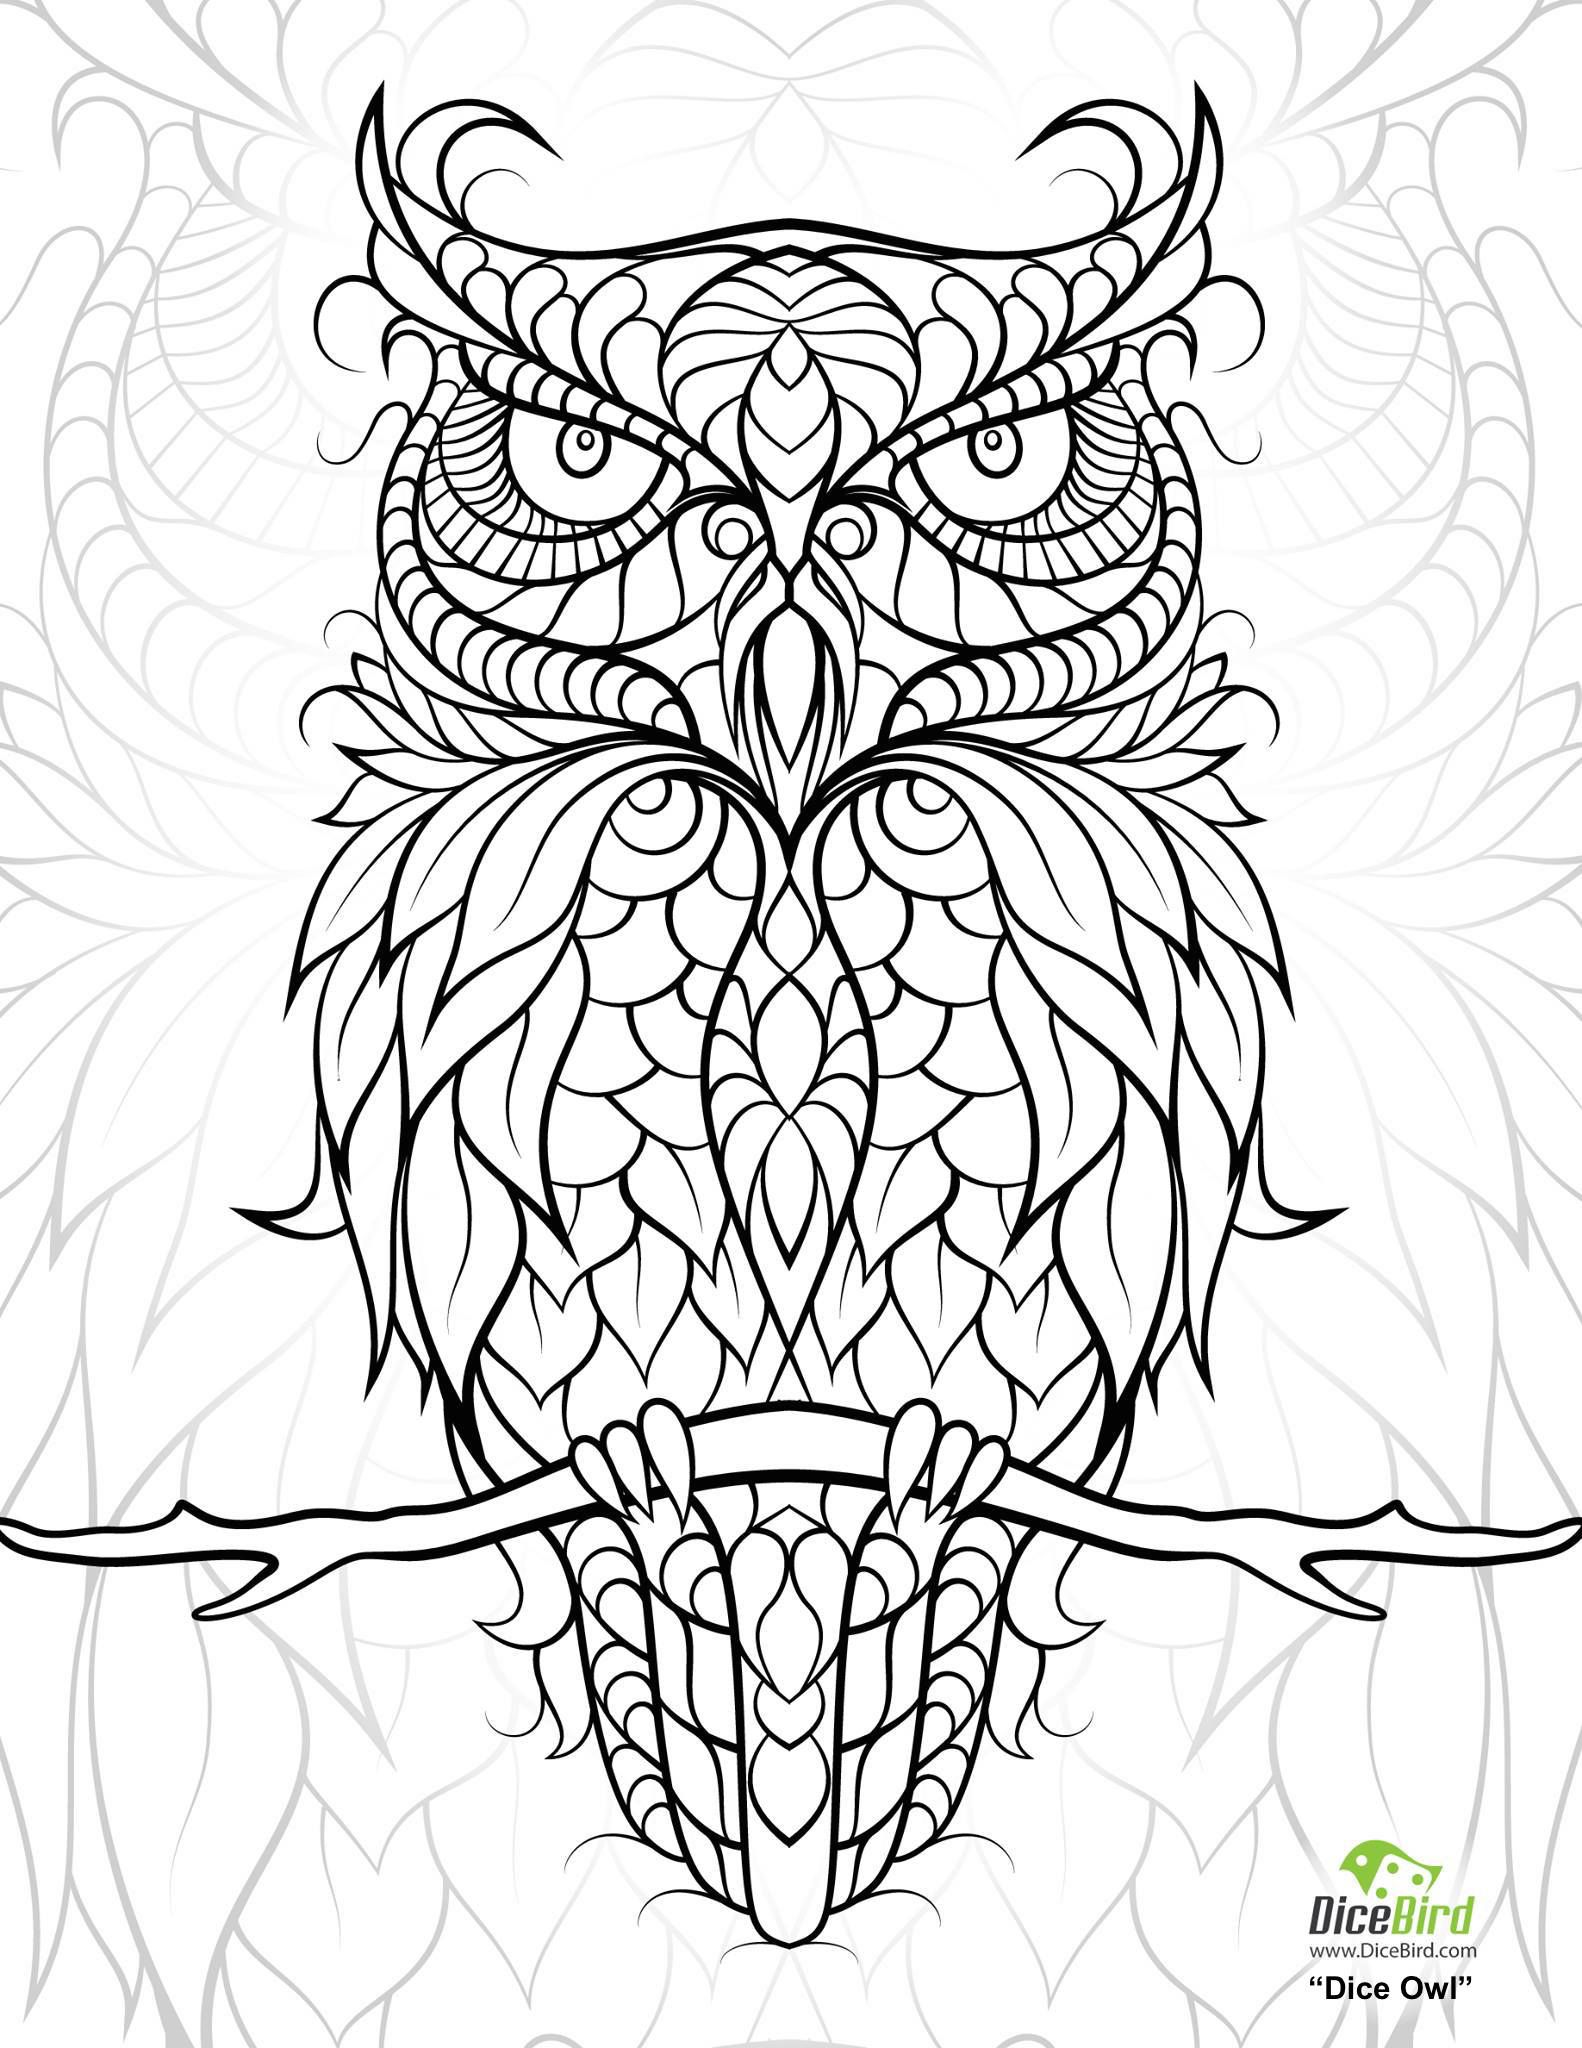 Diceowl Free Printable Adult Coloring Pages Owl Coloring